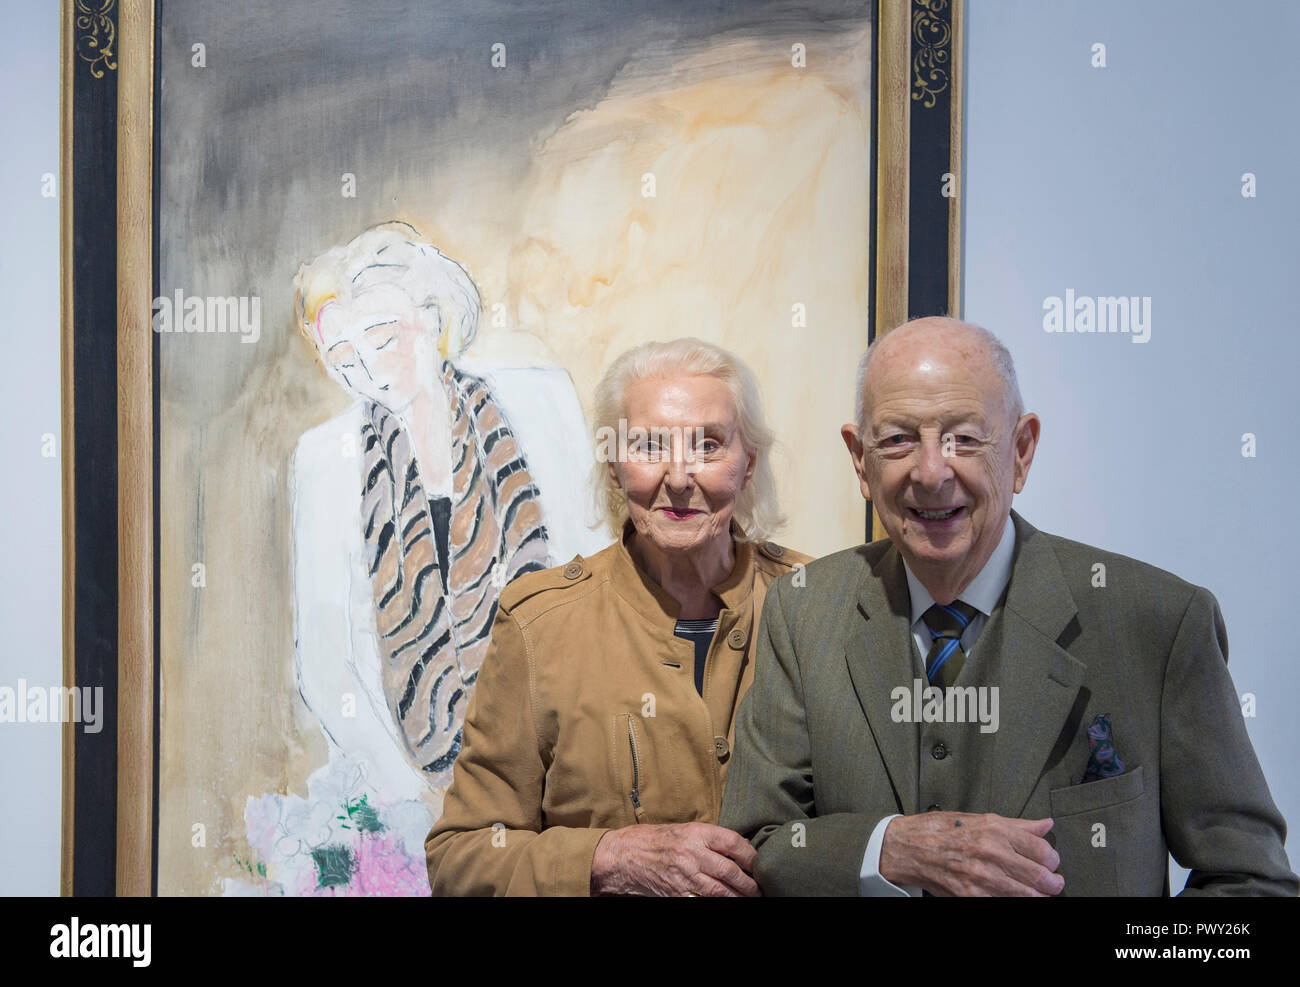 Opera Gallery, New Bond Street, London, UK. 18 October, 2018. 90 year old French fauvist artist André Brasilier attends the opening of a retrospective exhibition of his work, accompanied by his wife and muse, Chantal. Brasilier was the first ever artist to win the Prix de Rome, he was greatly admired by Marc Chagall, and he counted Jacqueline Roque as one of his good friends. However, much like Leon Kossoff, Brasilier has always kept a low profile. Image: Bouquet d'anniversaire, 2018. Credit: Malcolm Park/Alamy Live News. - Stock Image